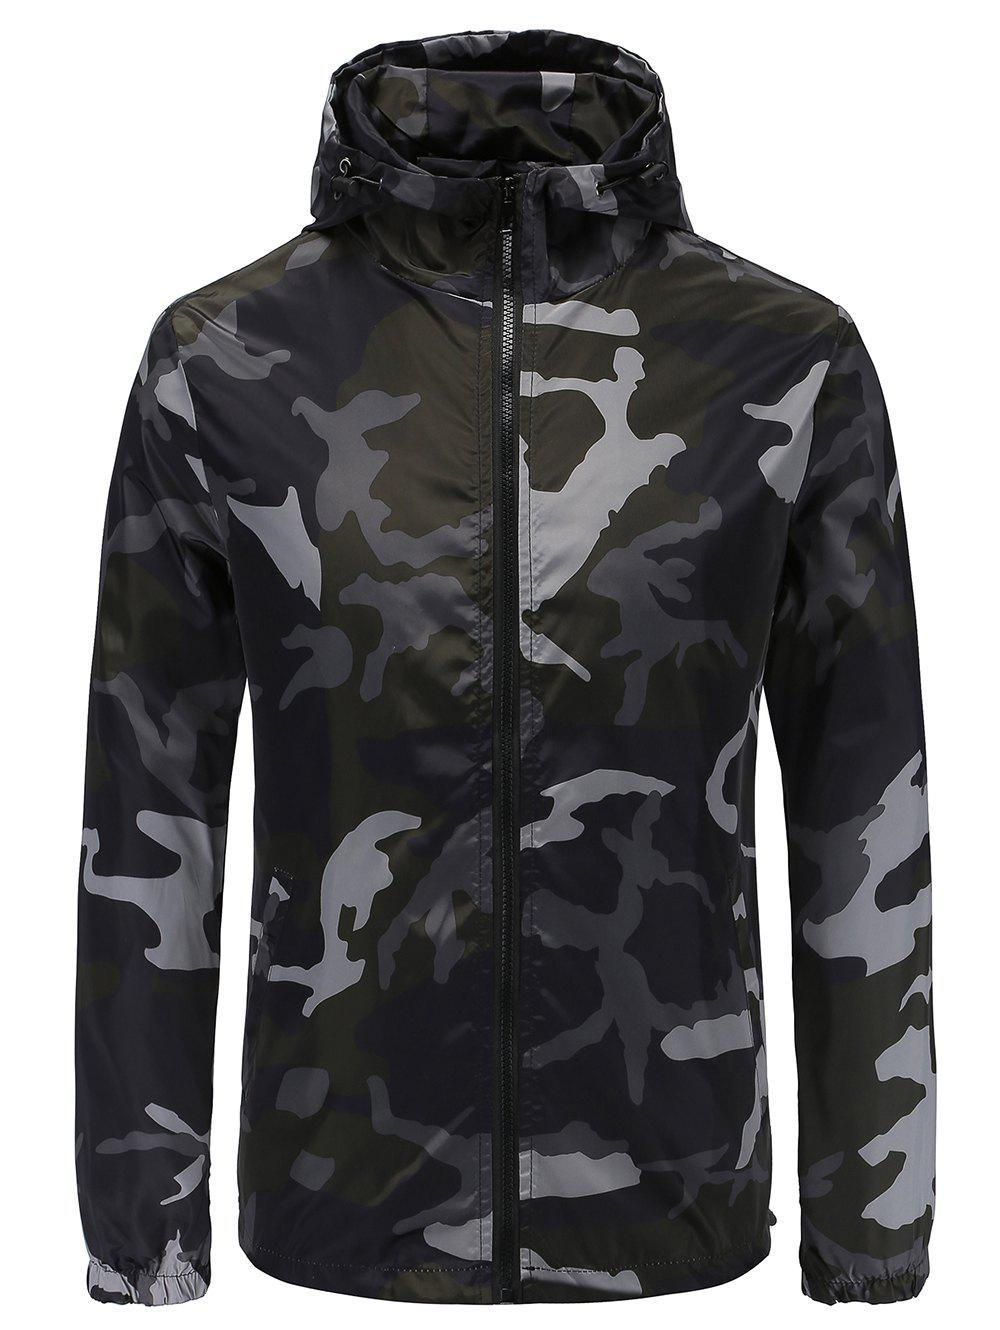 Latest Casual Camouflage Print Hooded Jacket